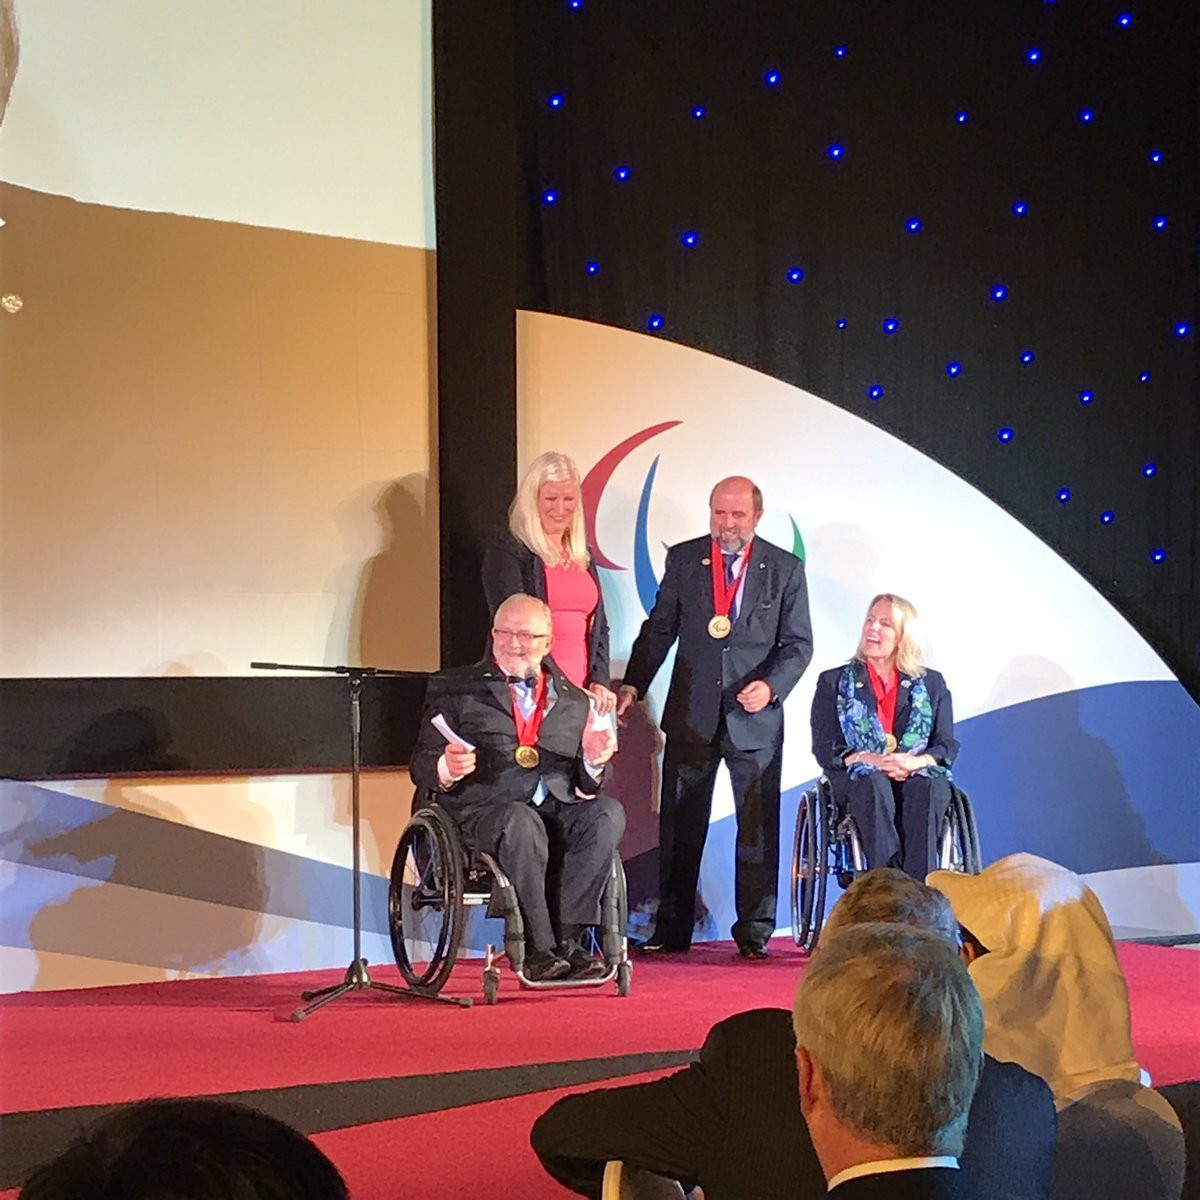 Outgoing IPC President Sir Philip awarded Paralympic Order